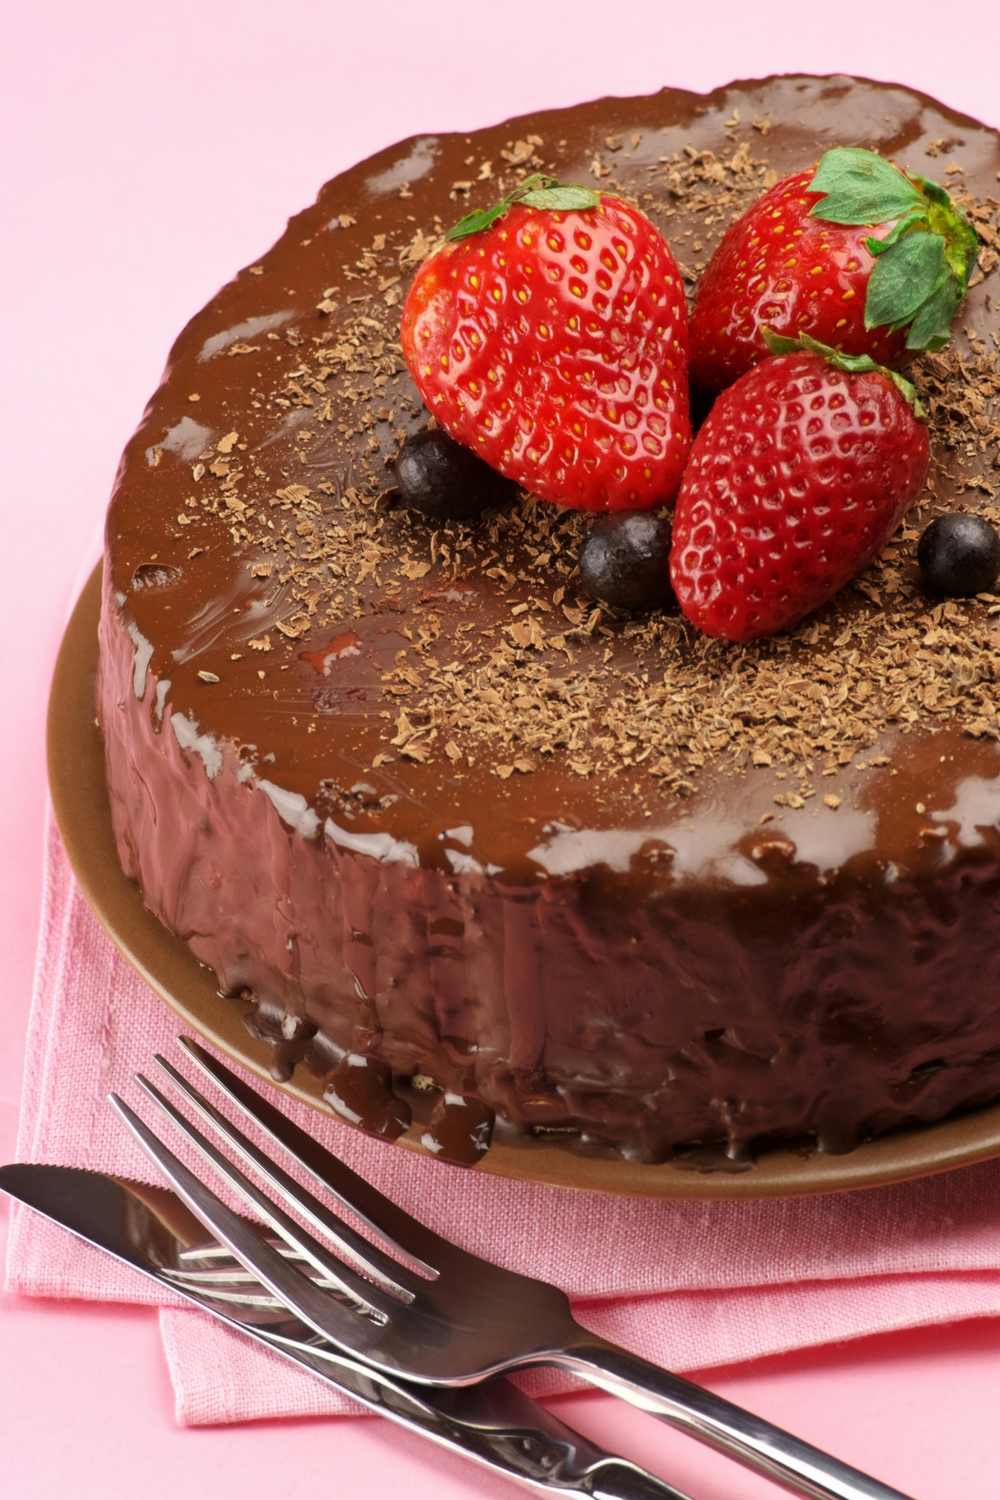 67 Yummy Cake Recipes To Devour Earning And Saving With